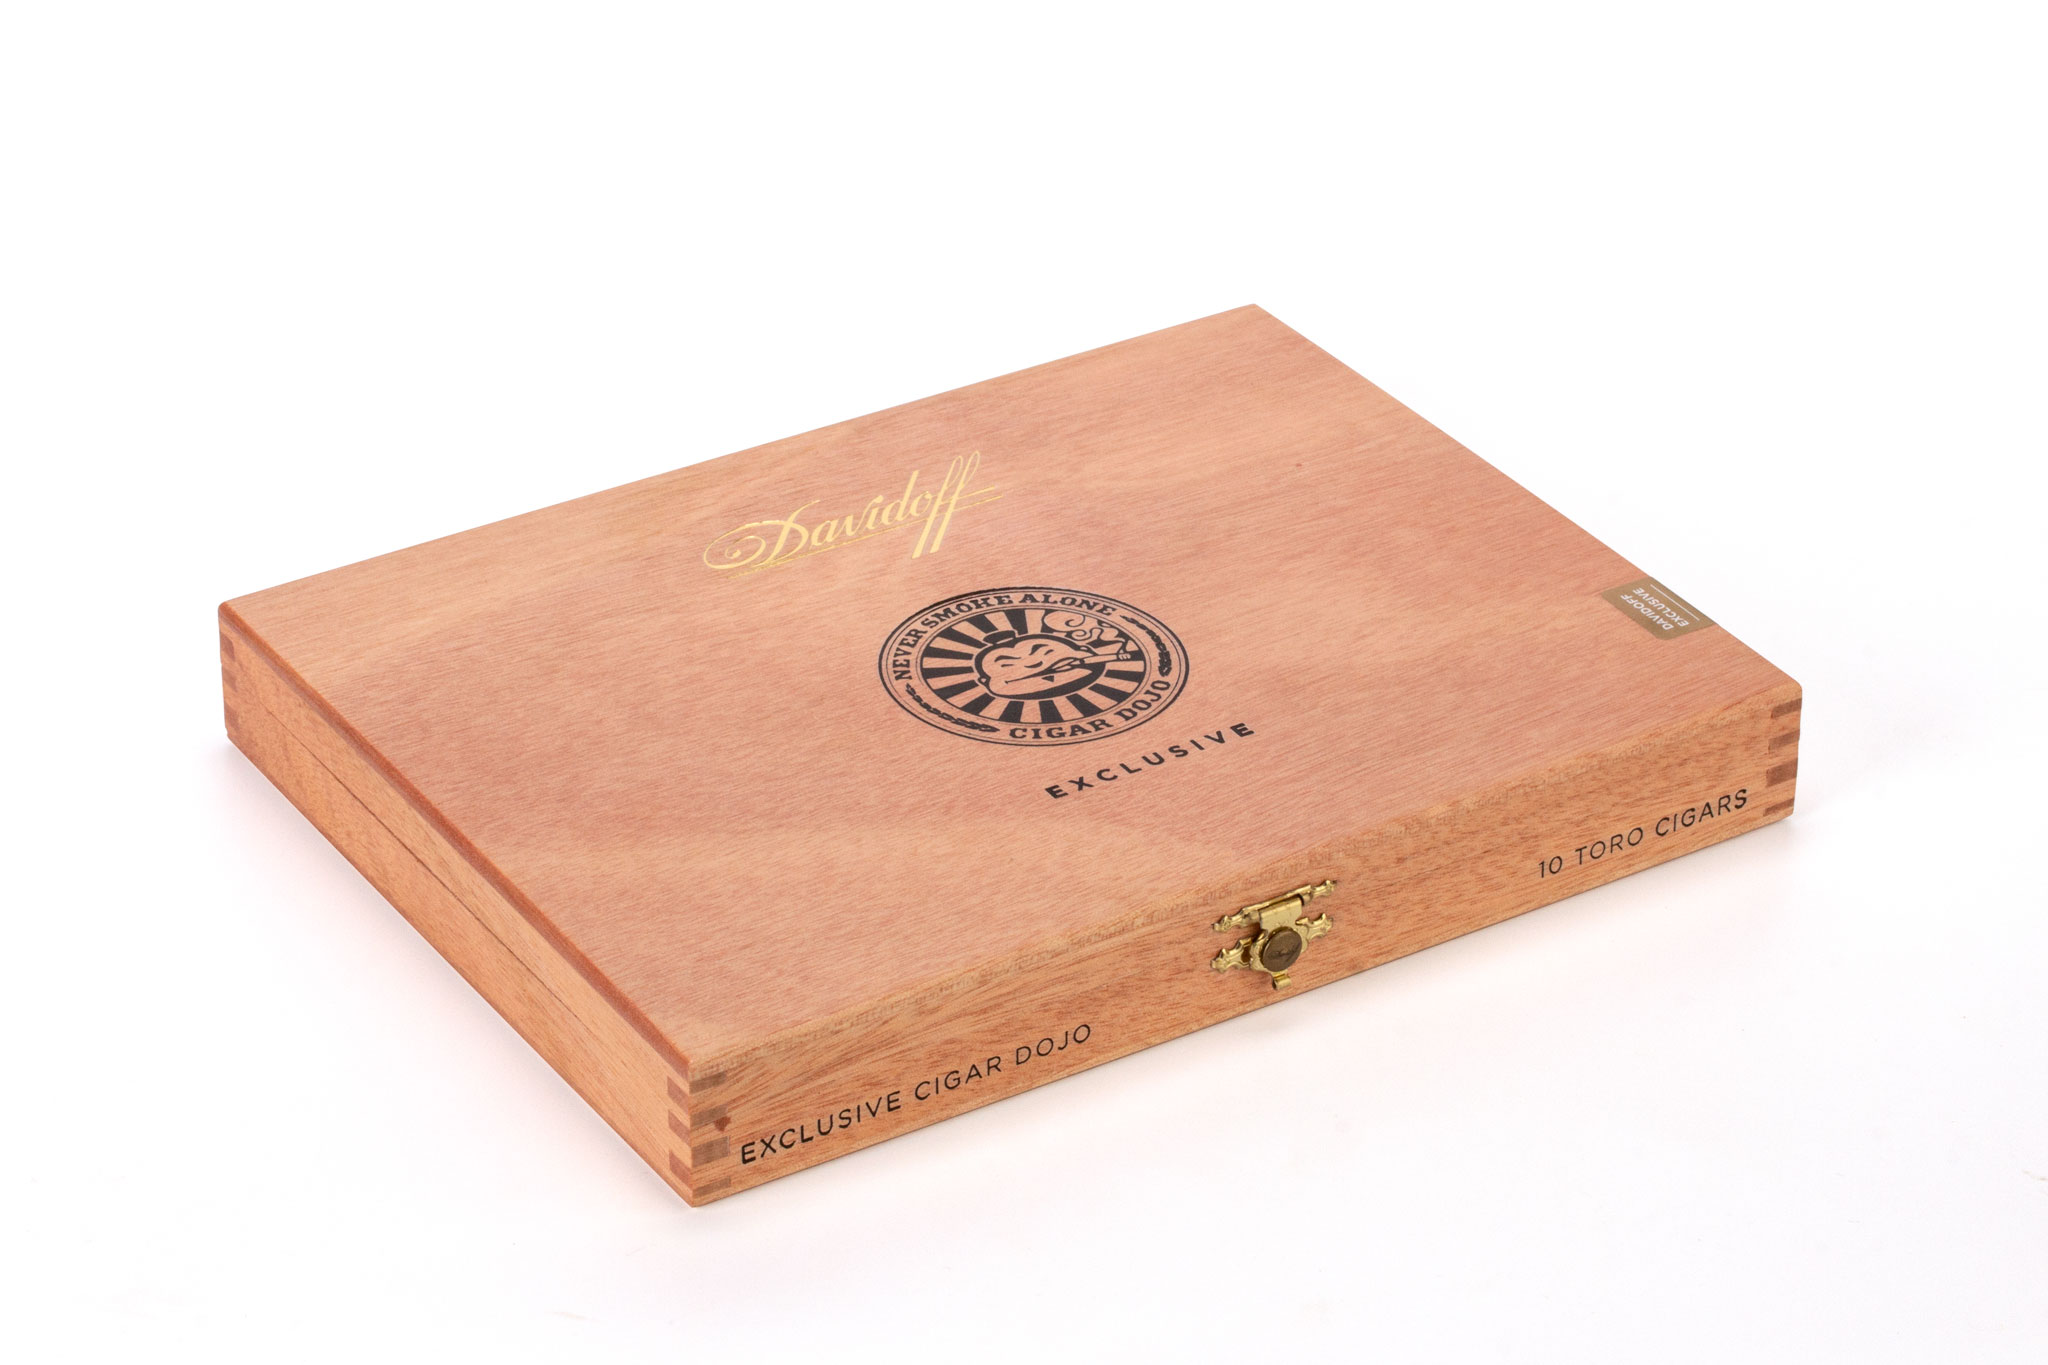 Davidoff Cigar Dojo Exclusive 2018 cigar box closed